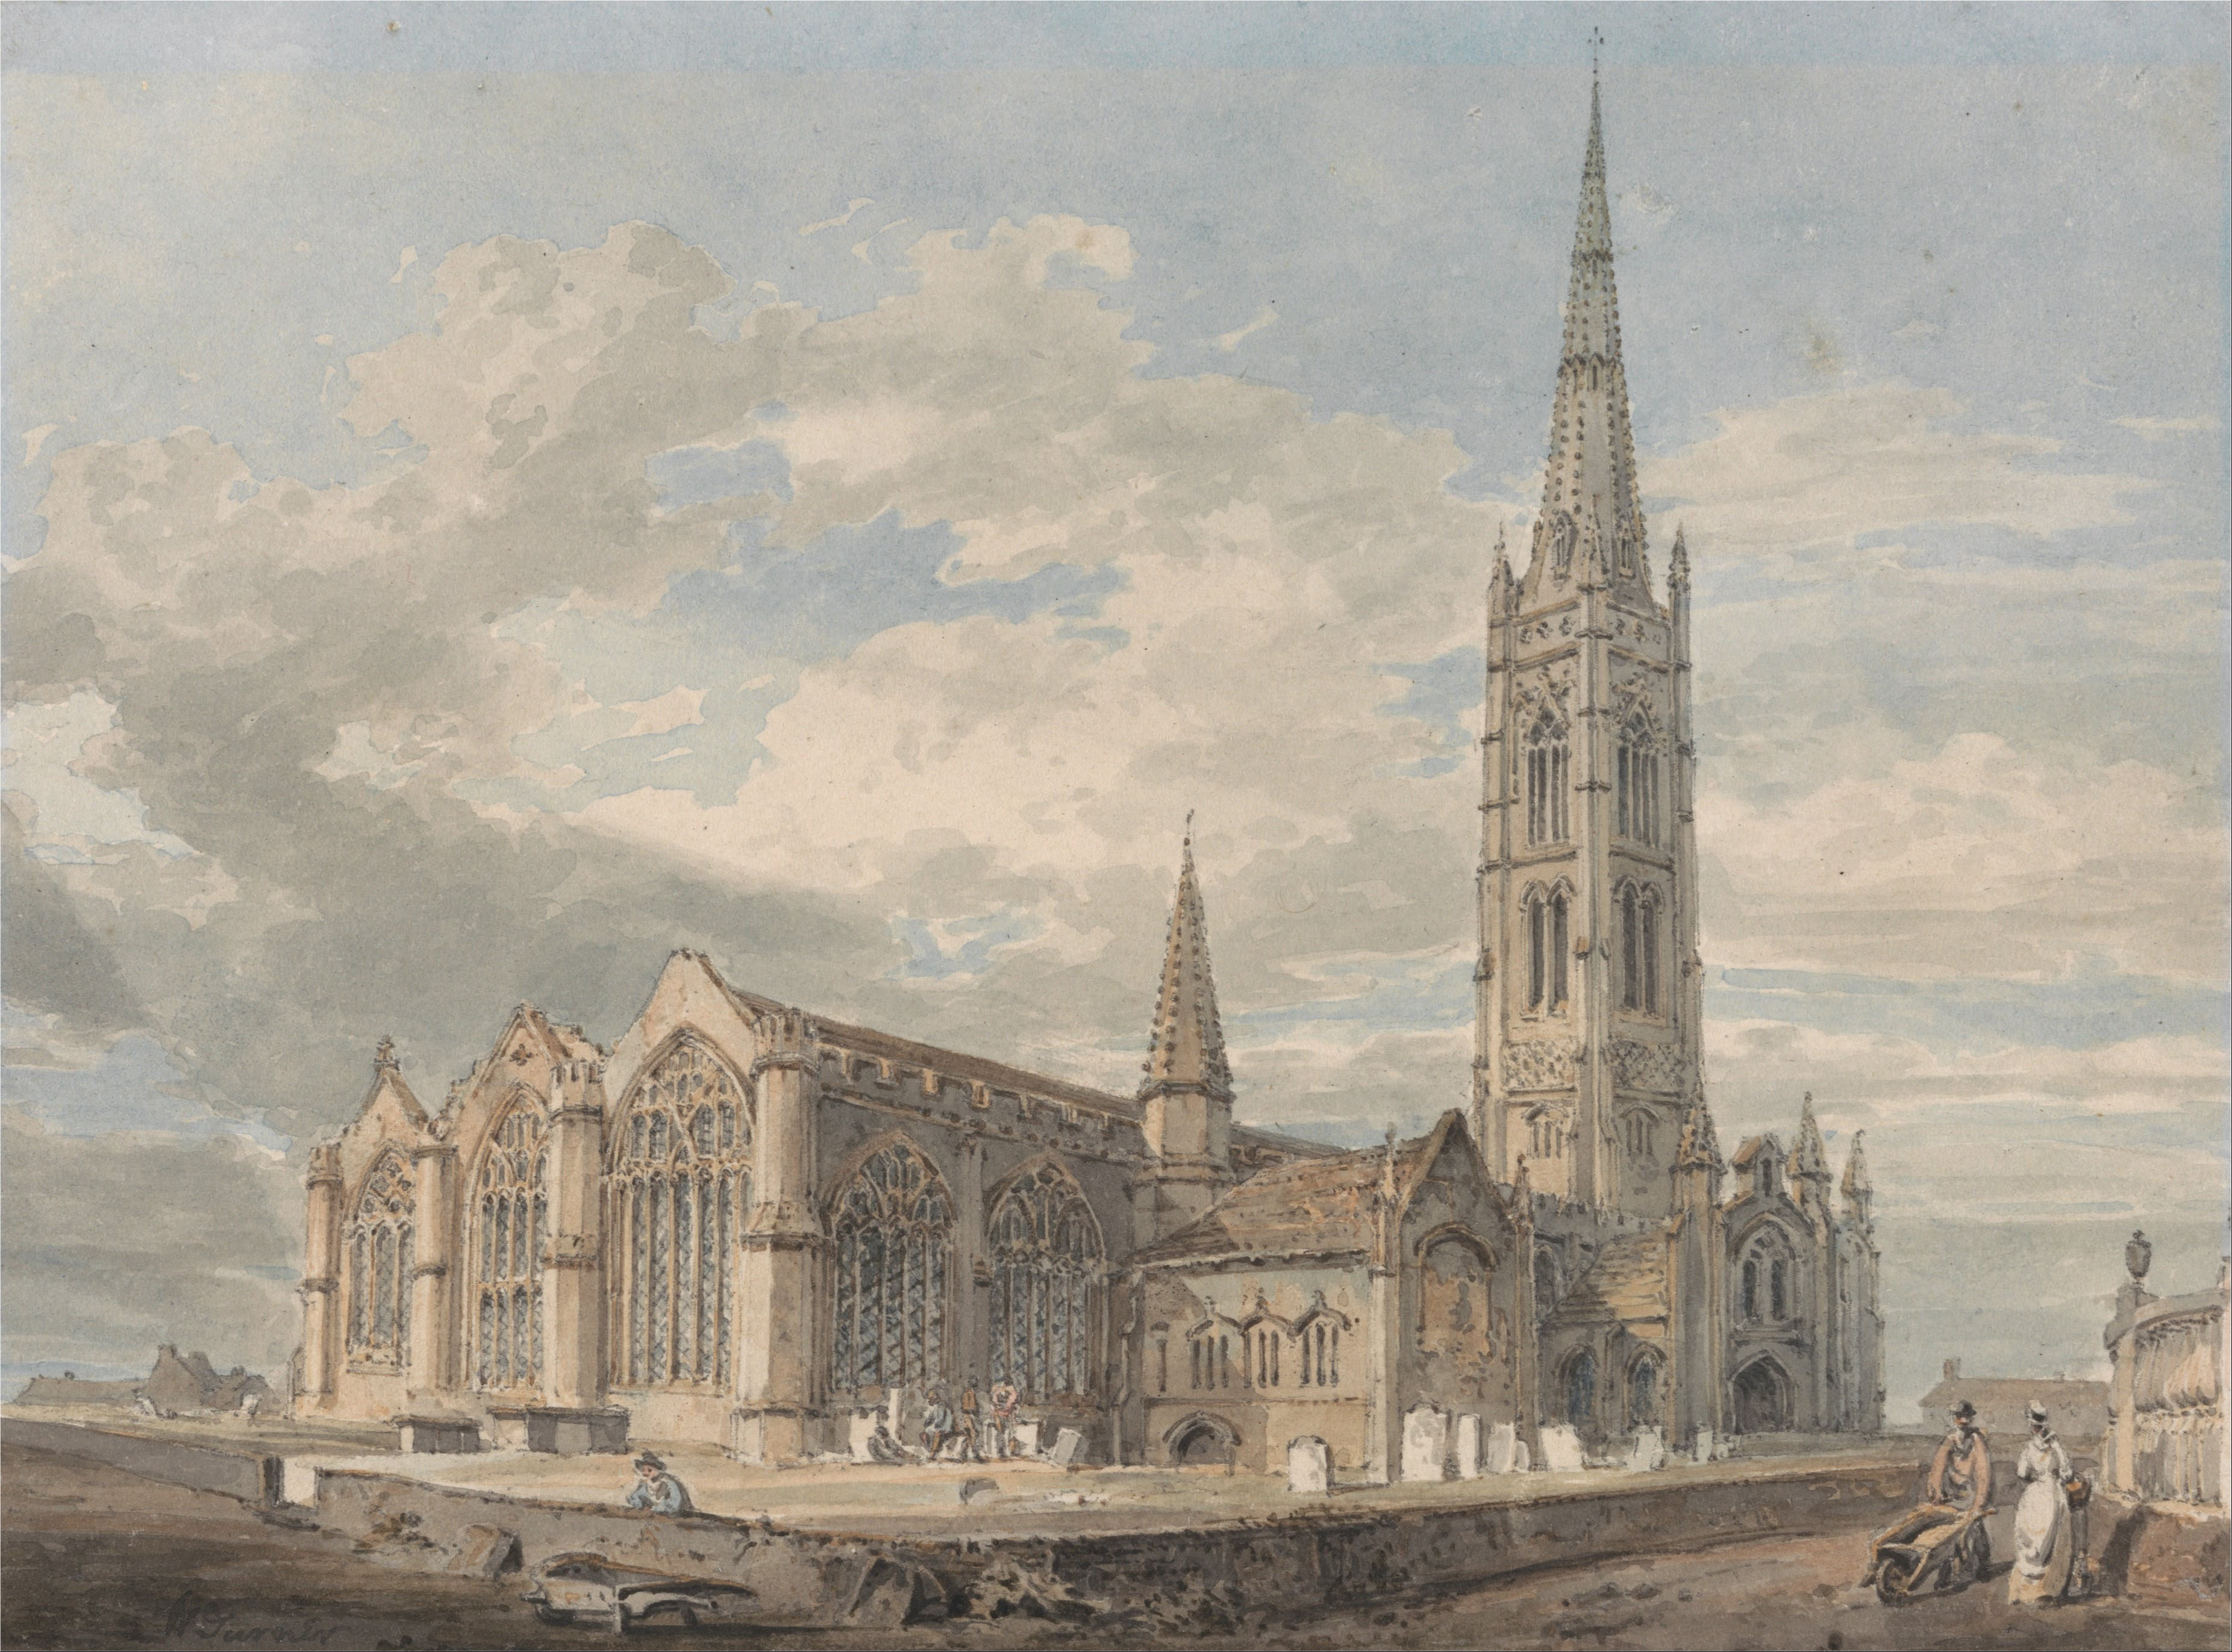 Joseph_Mallord_William_Turner_-_North_East_View_of_Grantham_Church,_Lincolnshire_-_Google_Art_Project